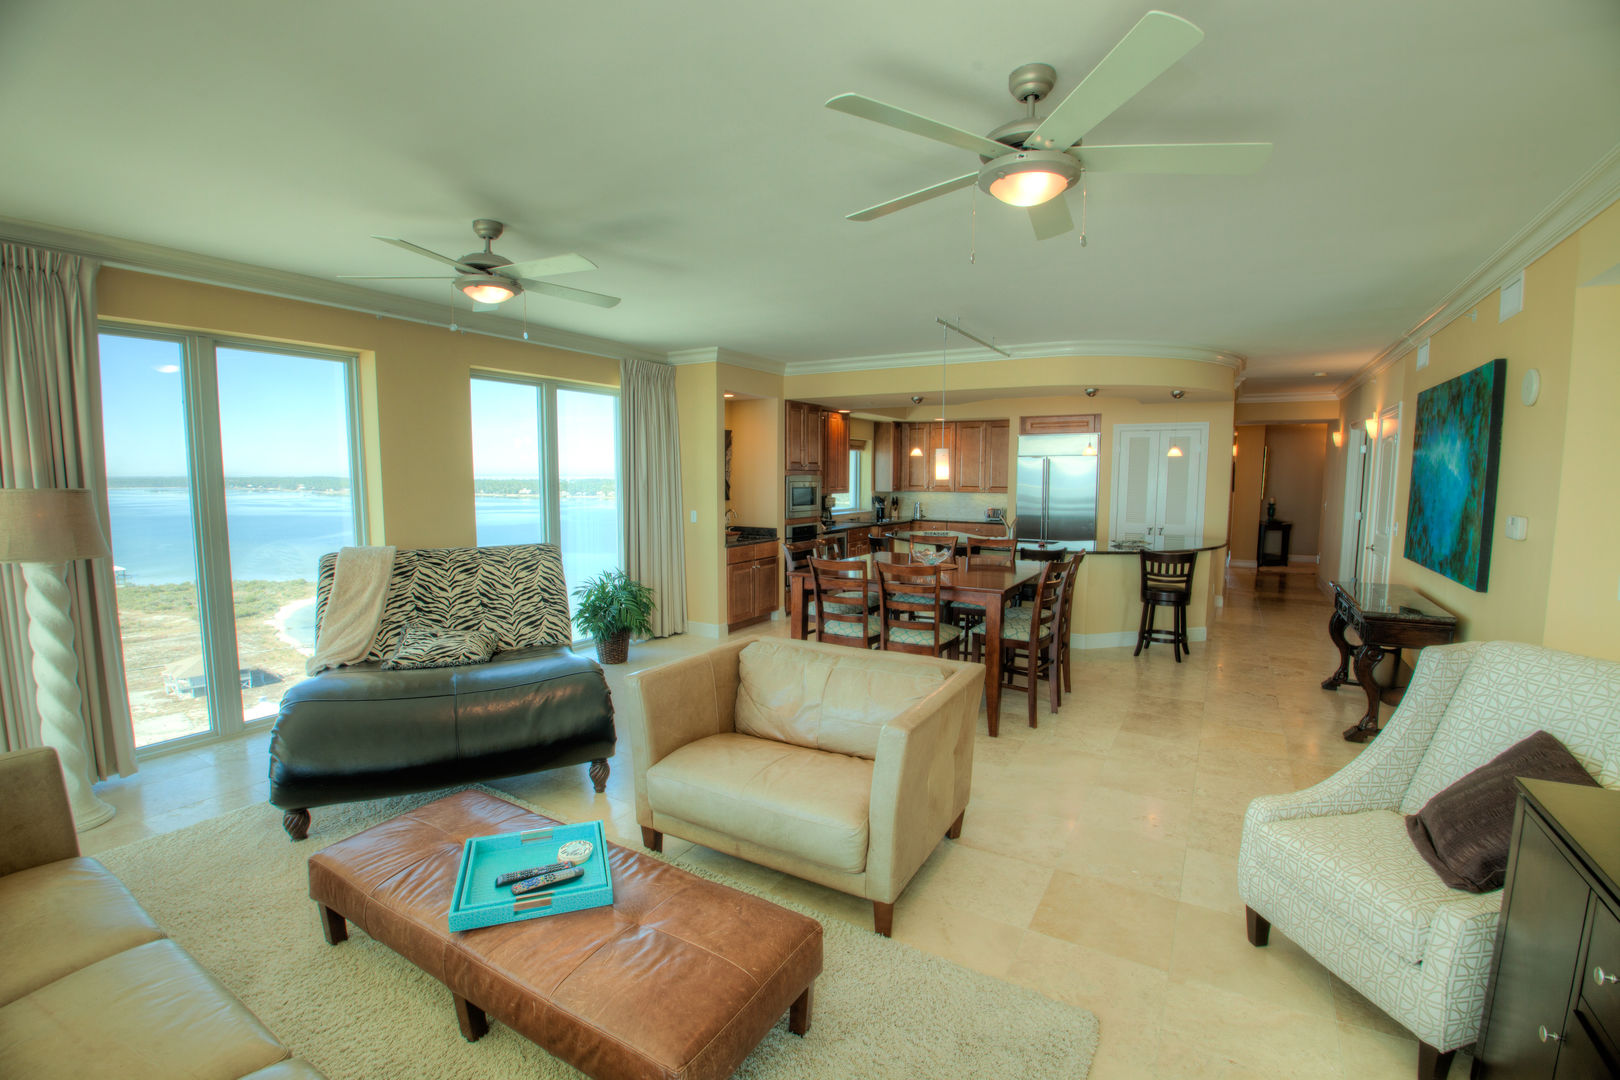 Sofa, Arm Chairs, Ceiling Fan, Windows, Dining Set, and the Kitchen.